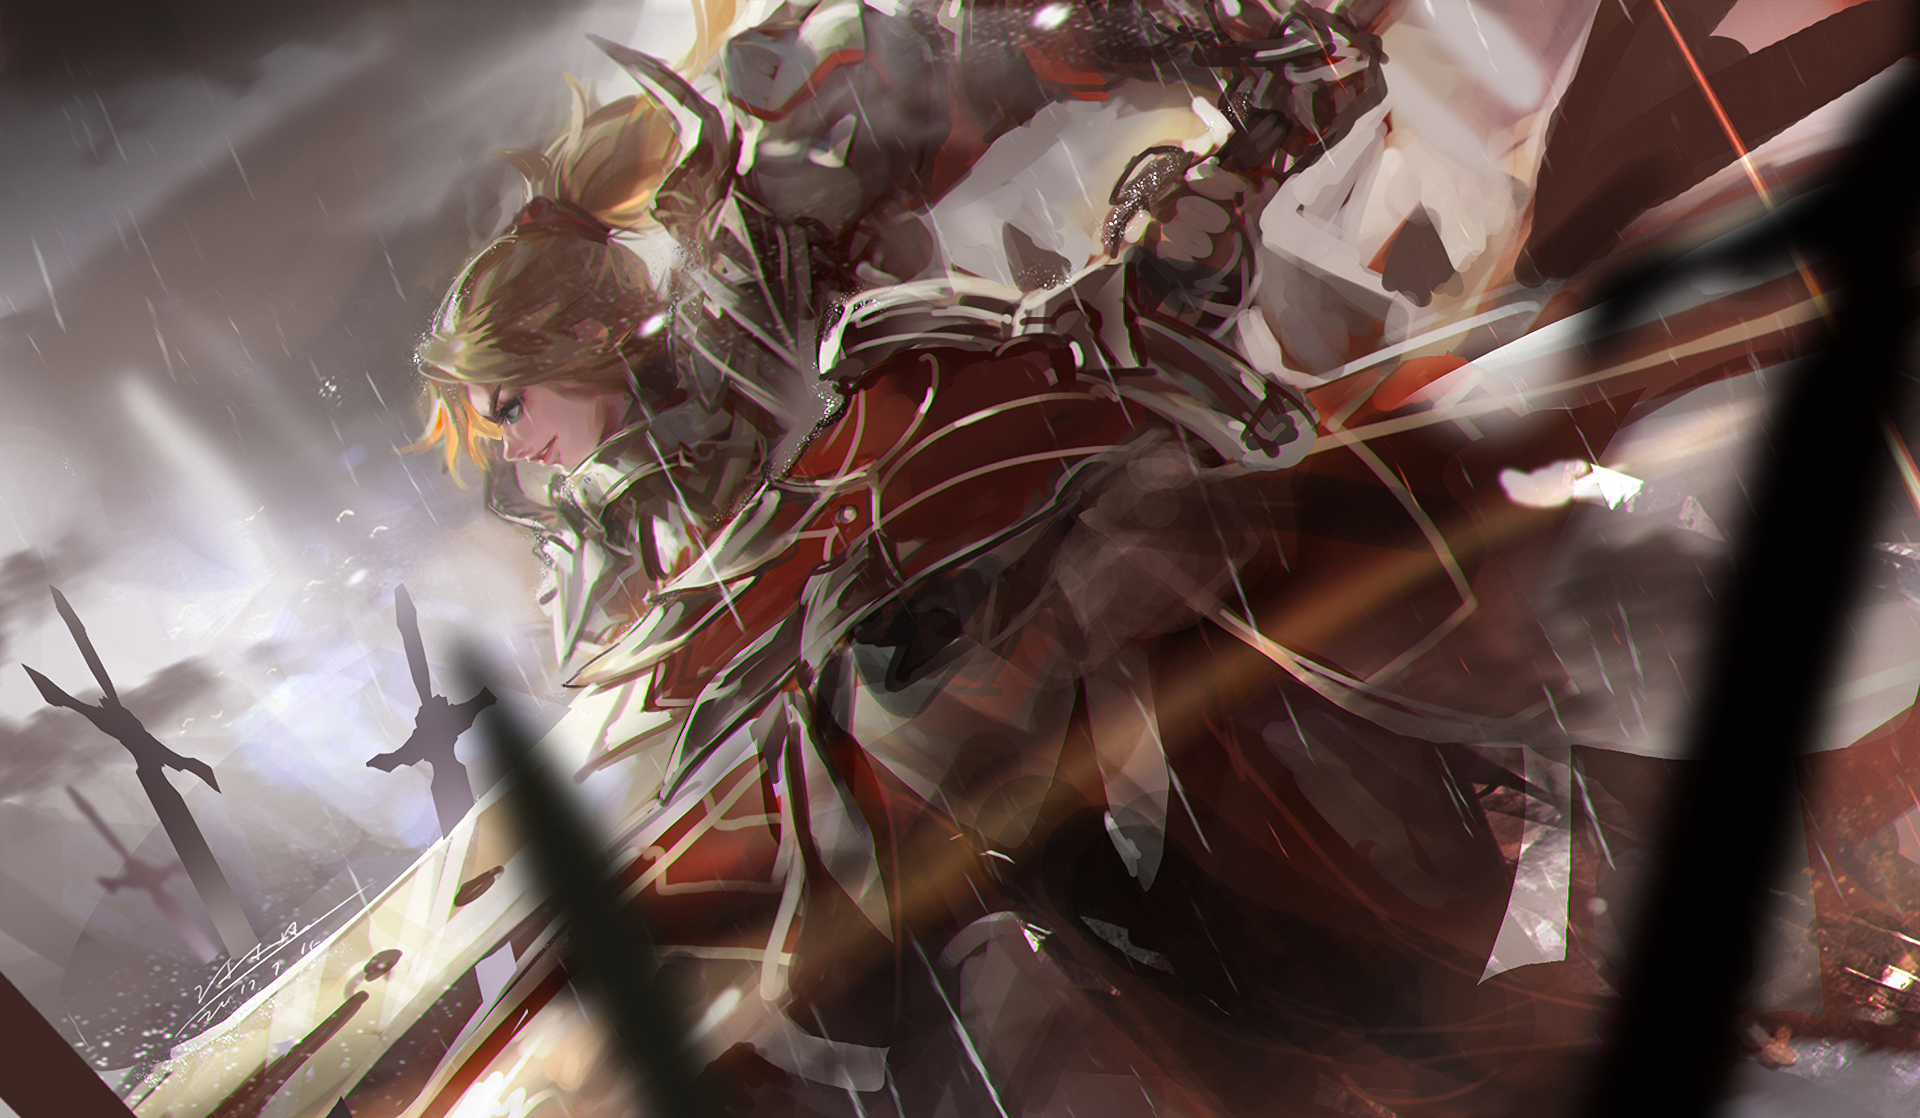 583 Fate Apocrypha Hd Wallpapers Background Images Wallpaper Abyss